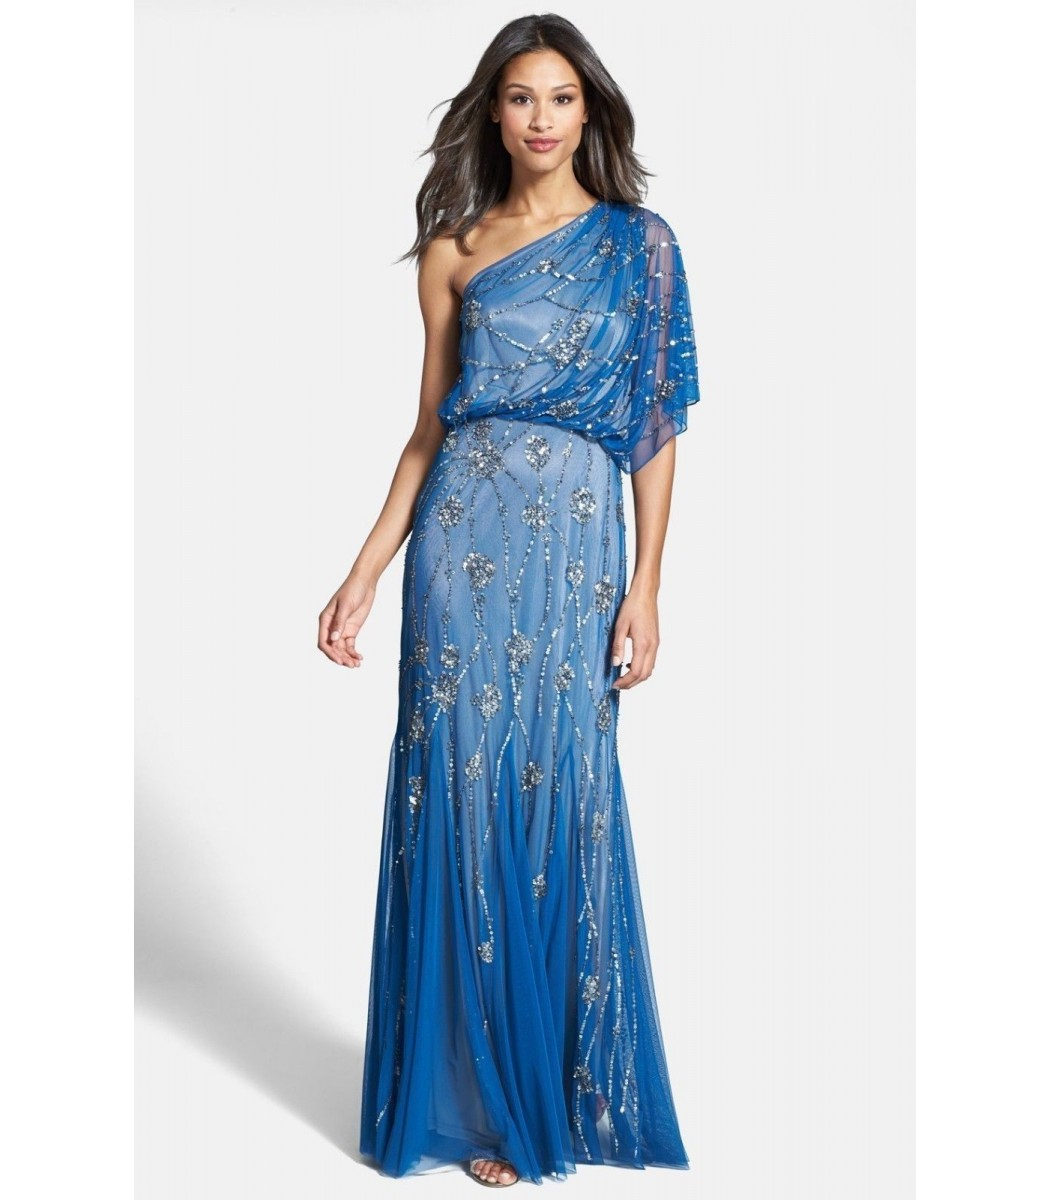 ADRIANNA PAPELL 091860320 Blue Lapis One Shoulder Gown Dress U.S. Sz ...